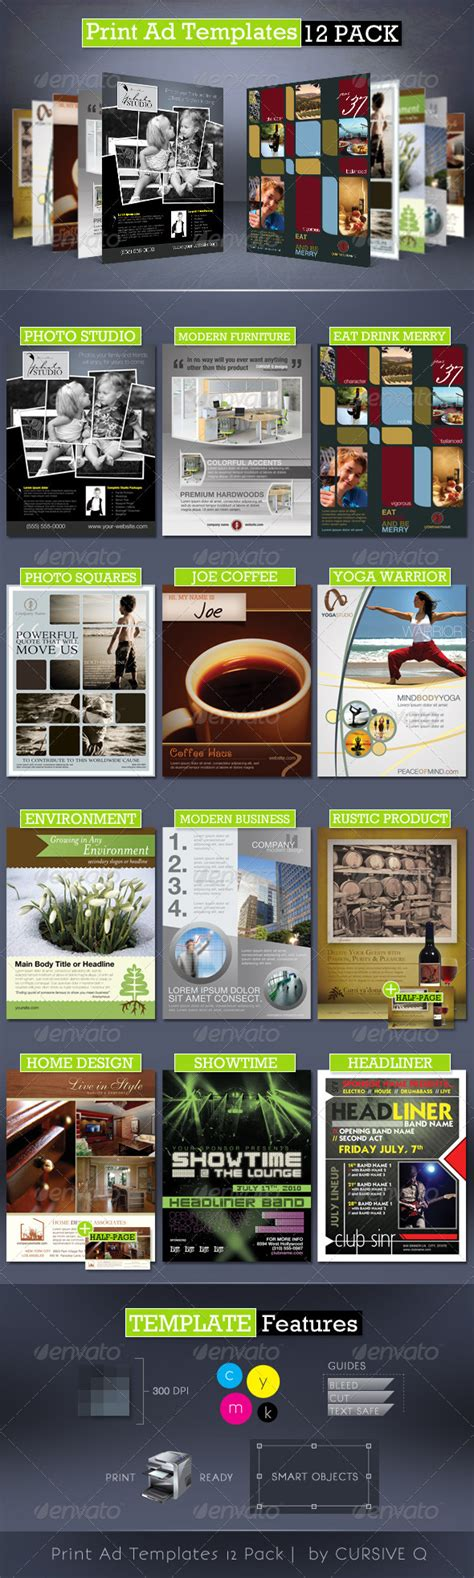 print ad templates 12 pack full page magazine ads psd on